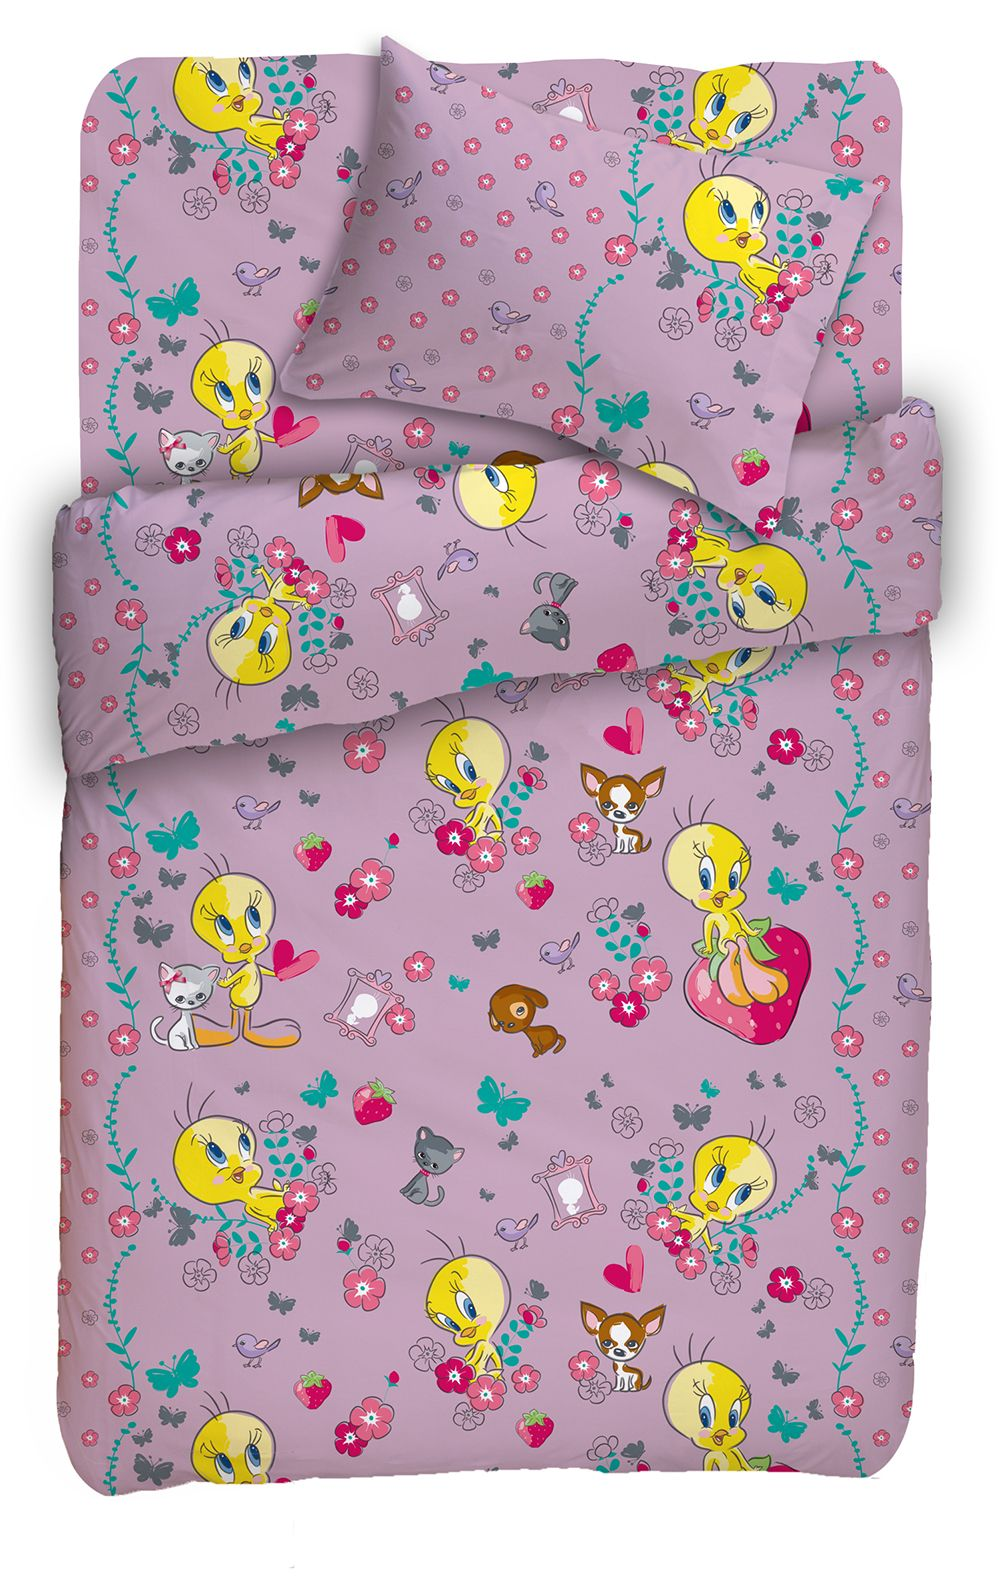 Tweety Homewear sheets